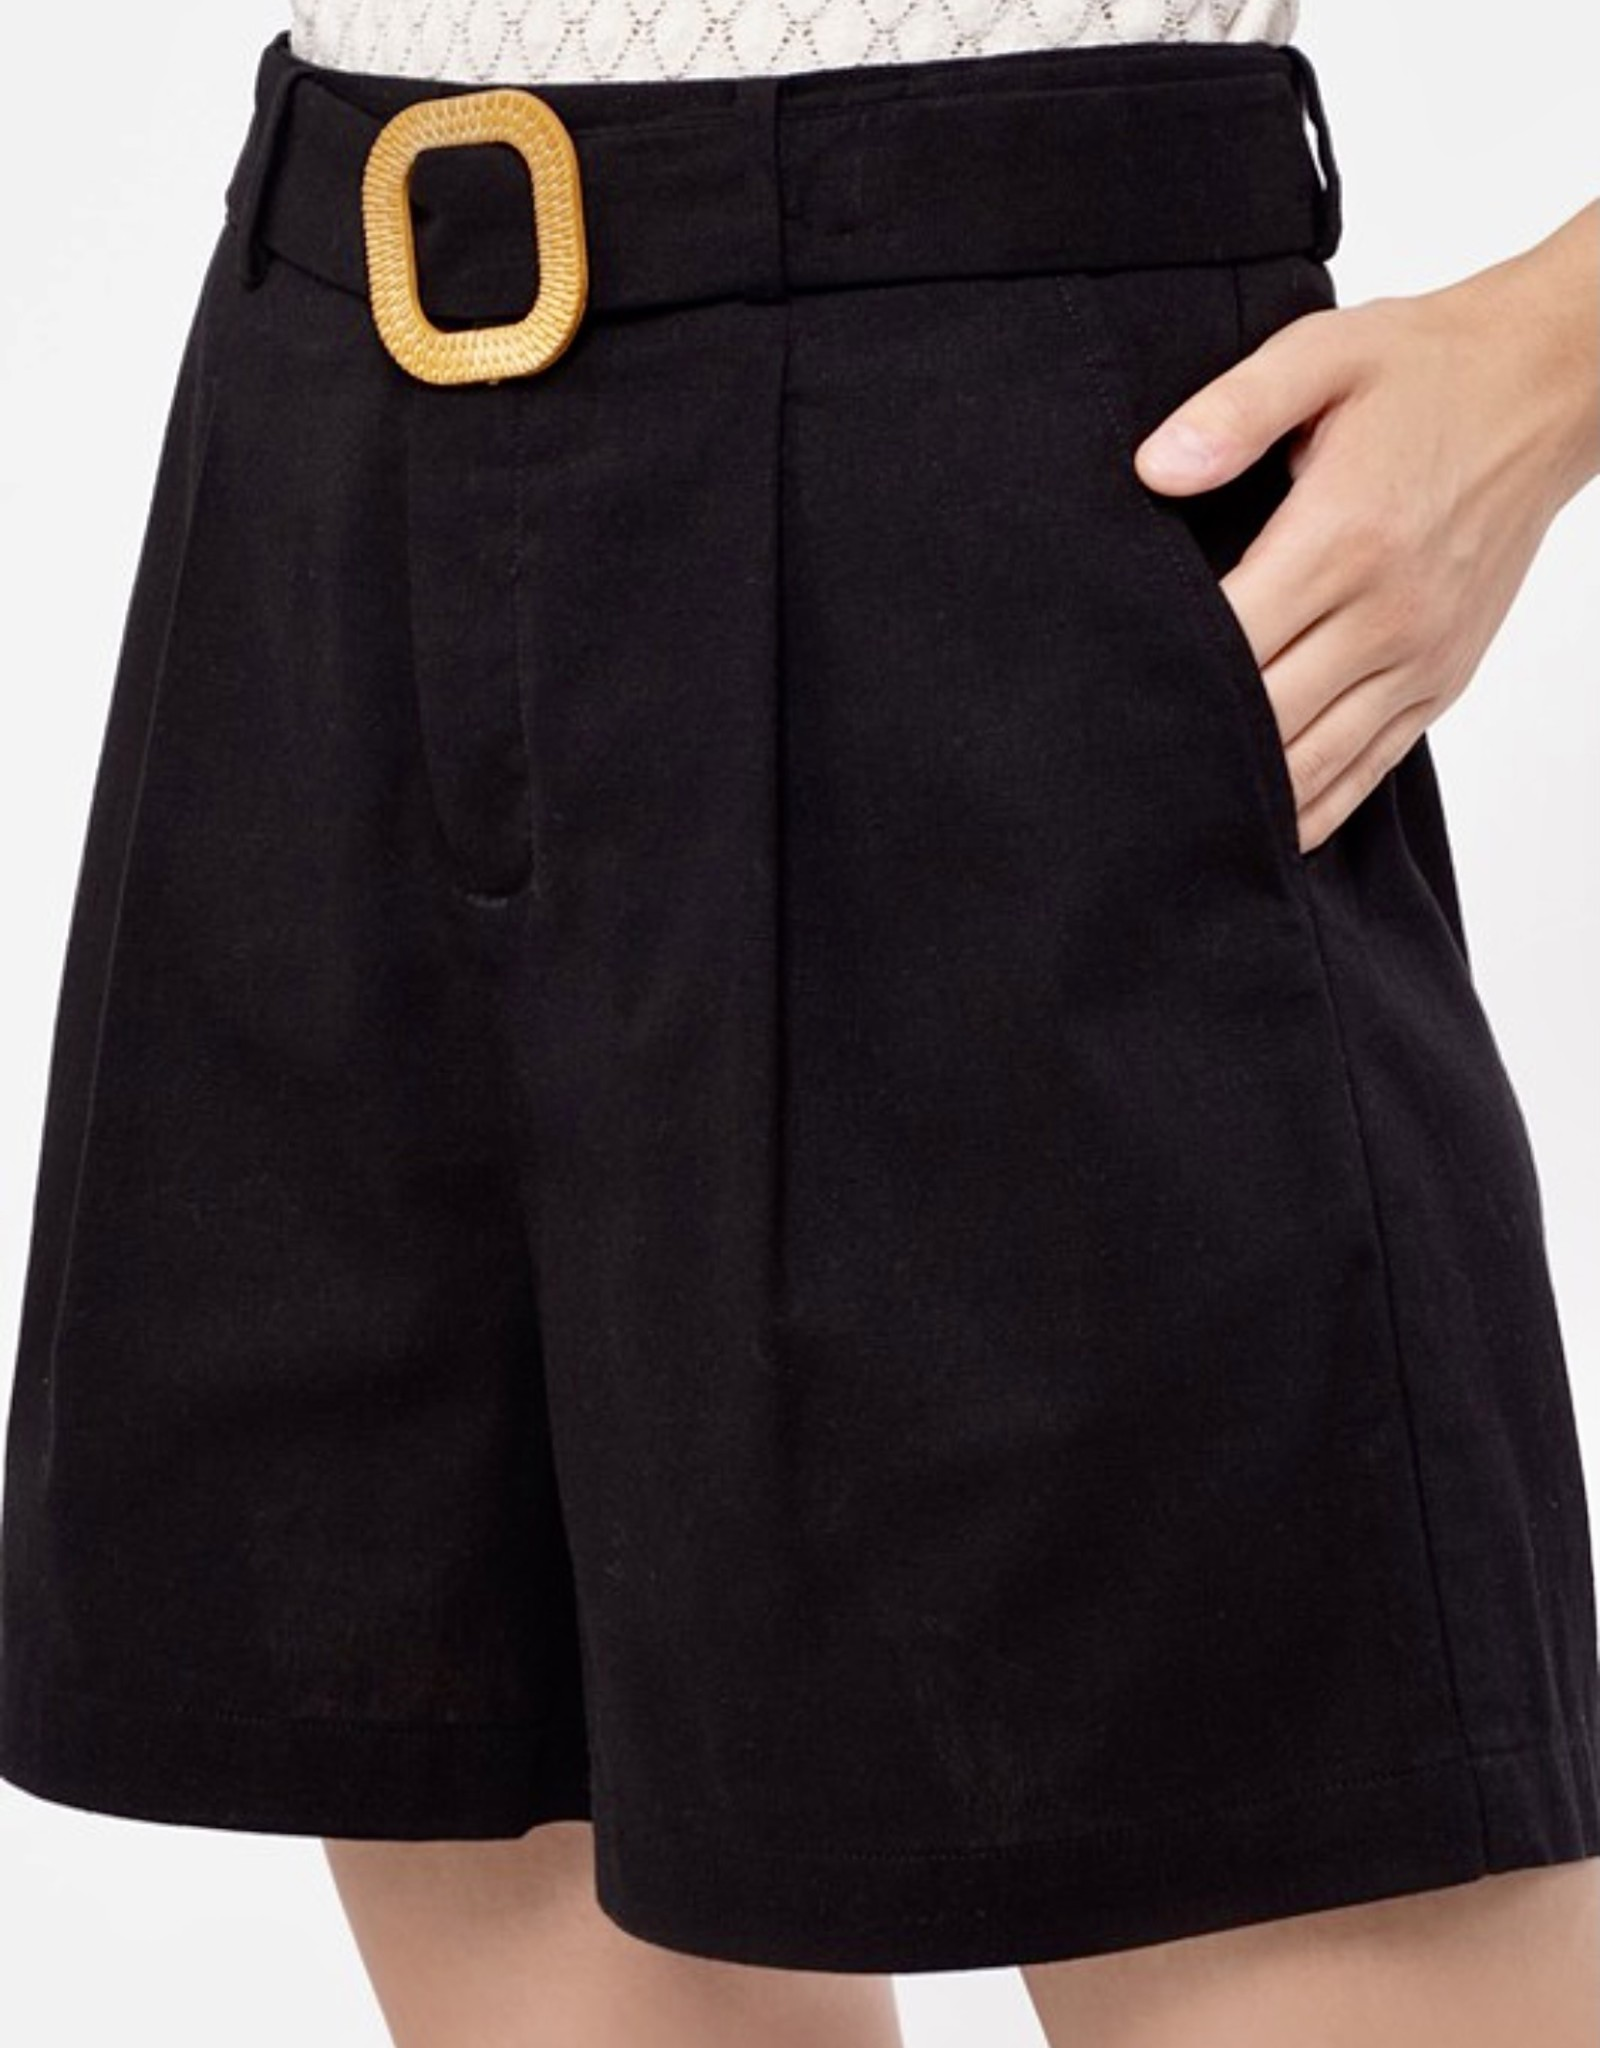 HUSH High waist front pleat, walking shorts w/ belt